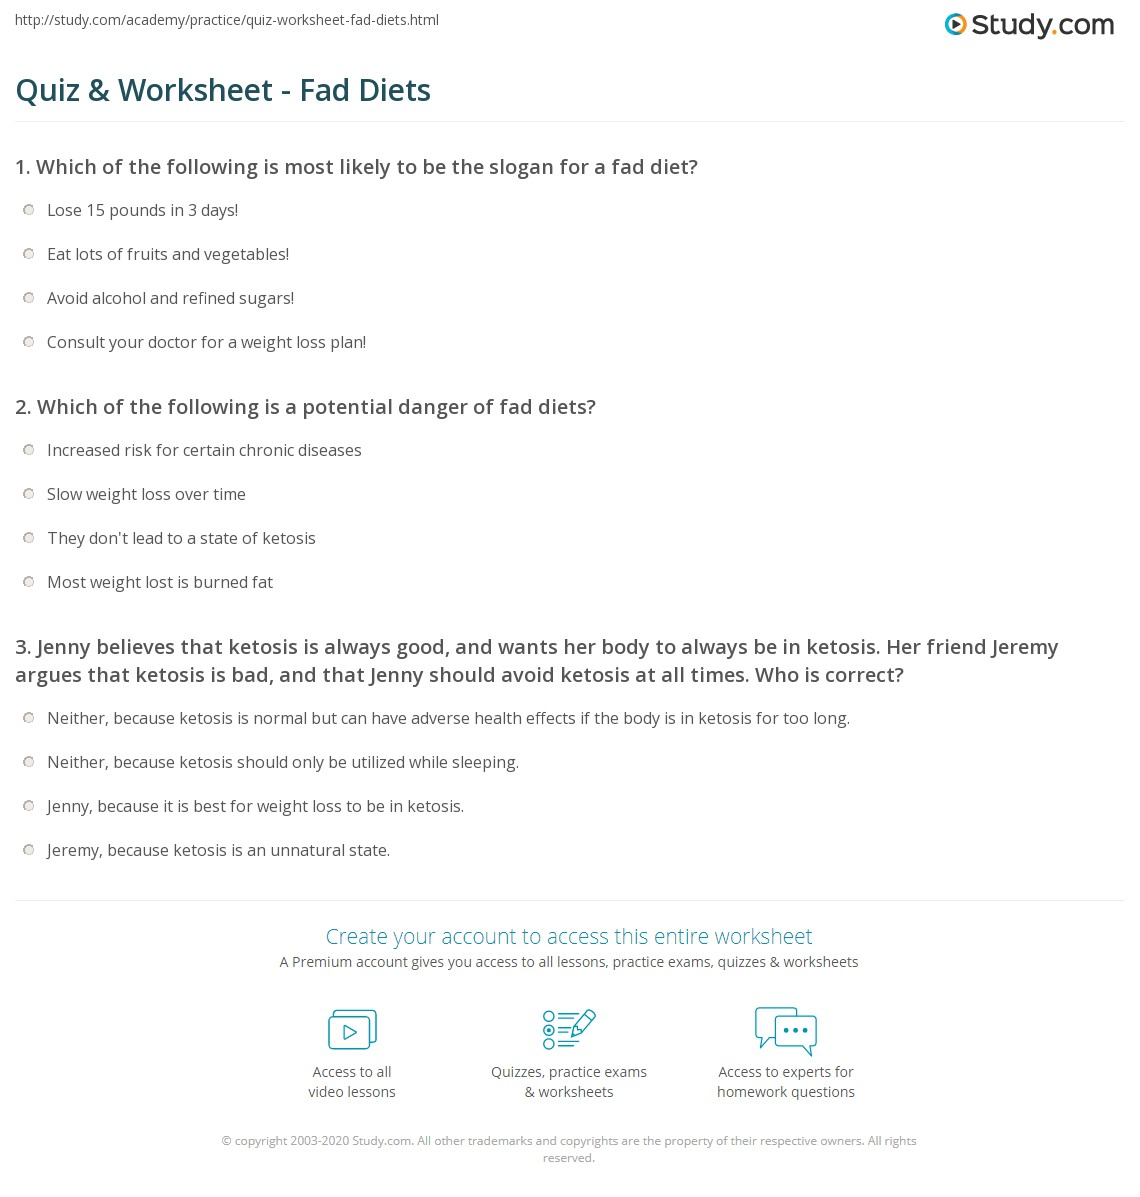 quiz & worksheet - fad diets | study